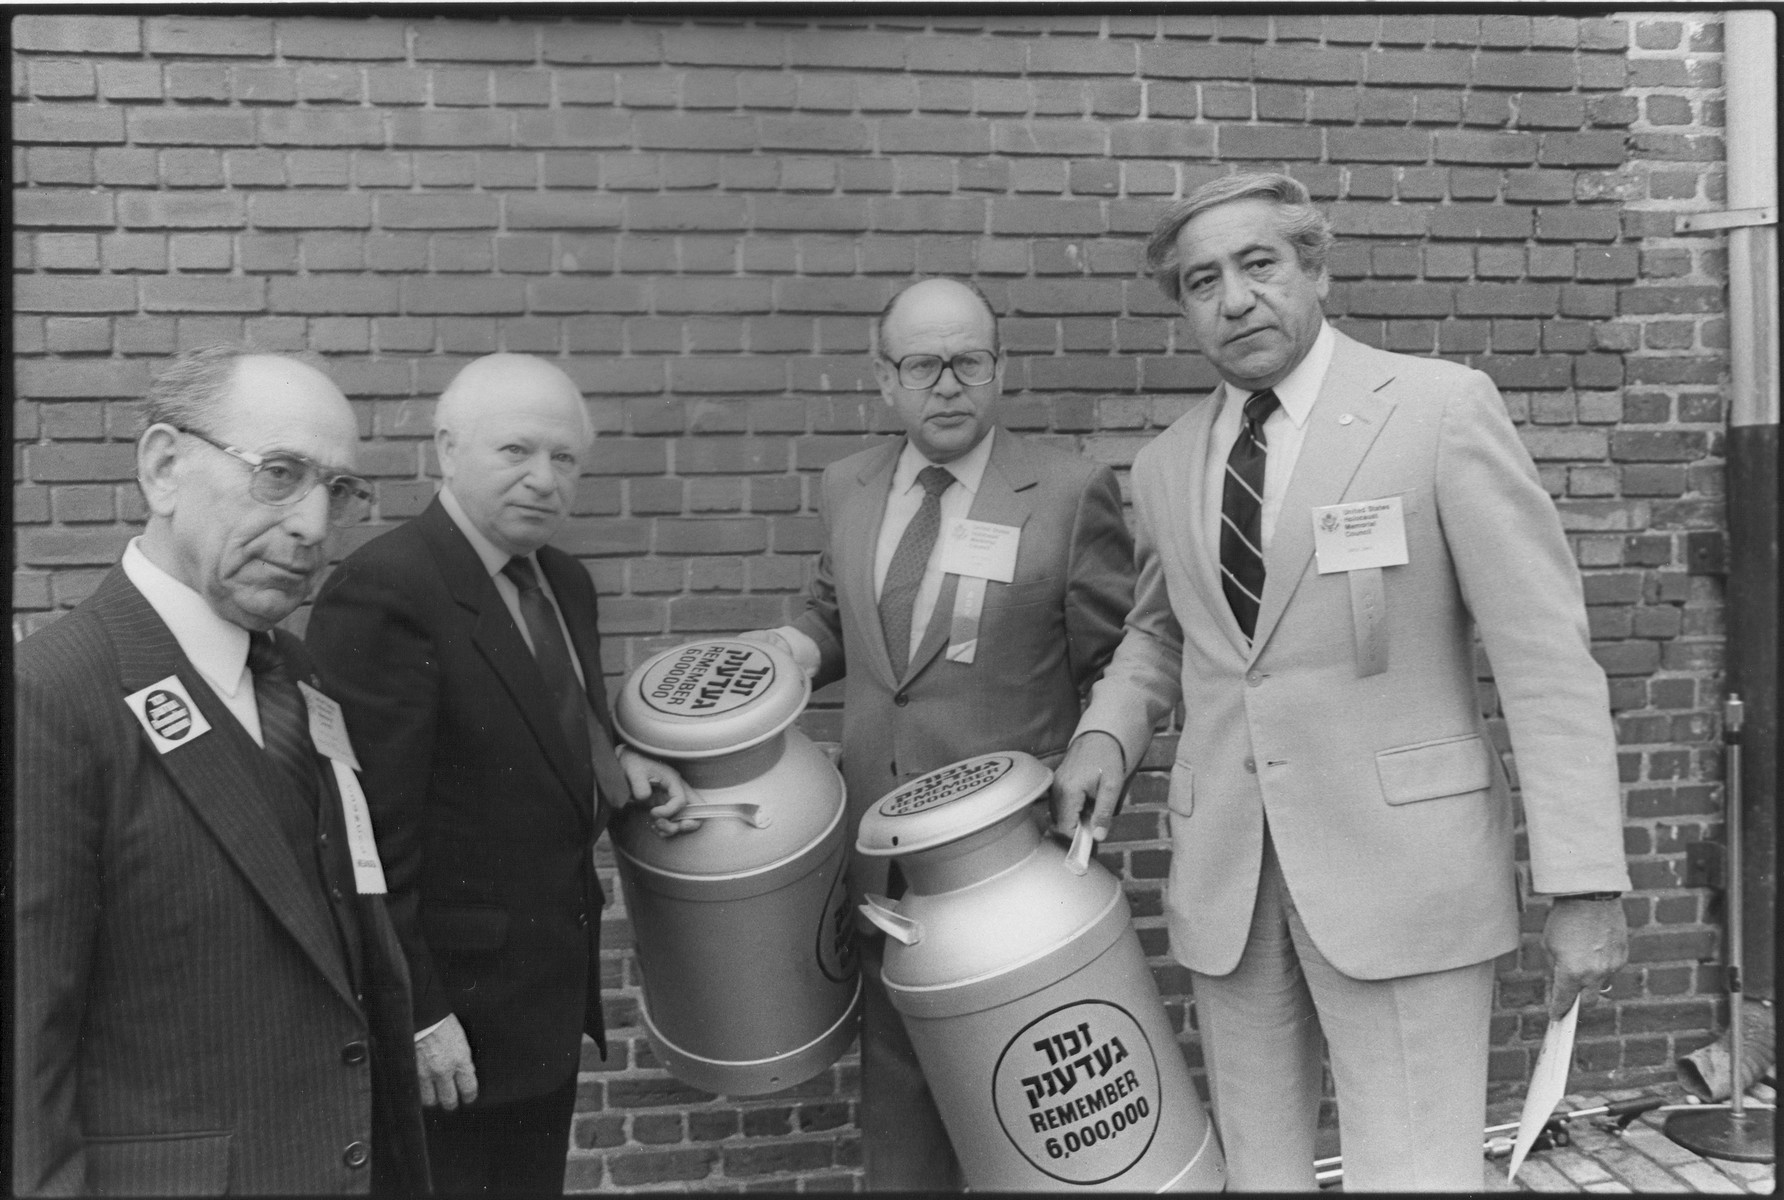 Members of the United States Holocaust Memorial Council pose with two milkcans containing a Scroll of Remembrance signed by Holocaust survivors at the Symbolic Groundbreaking Ceremony of the U.S. Holocaust Memorial Museum.  Pictured from left to right are: Miles Lerman, Benjamin Meed, Samuel E. Bloch and David Chase.